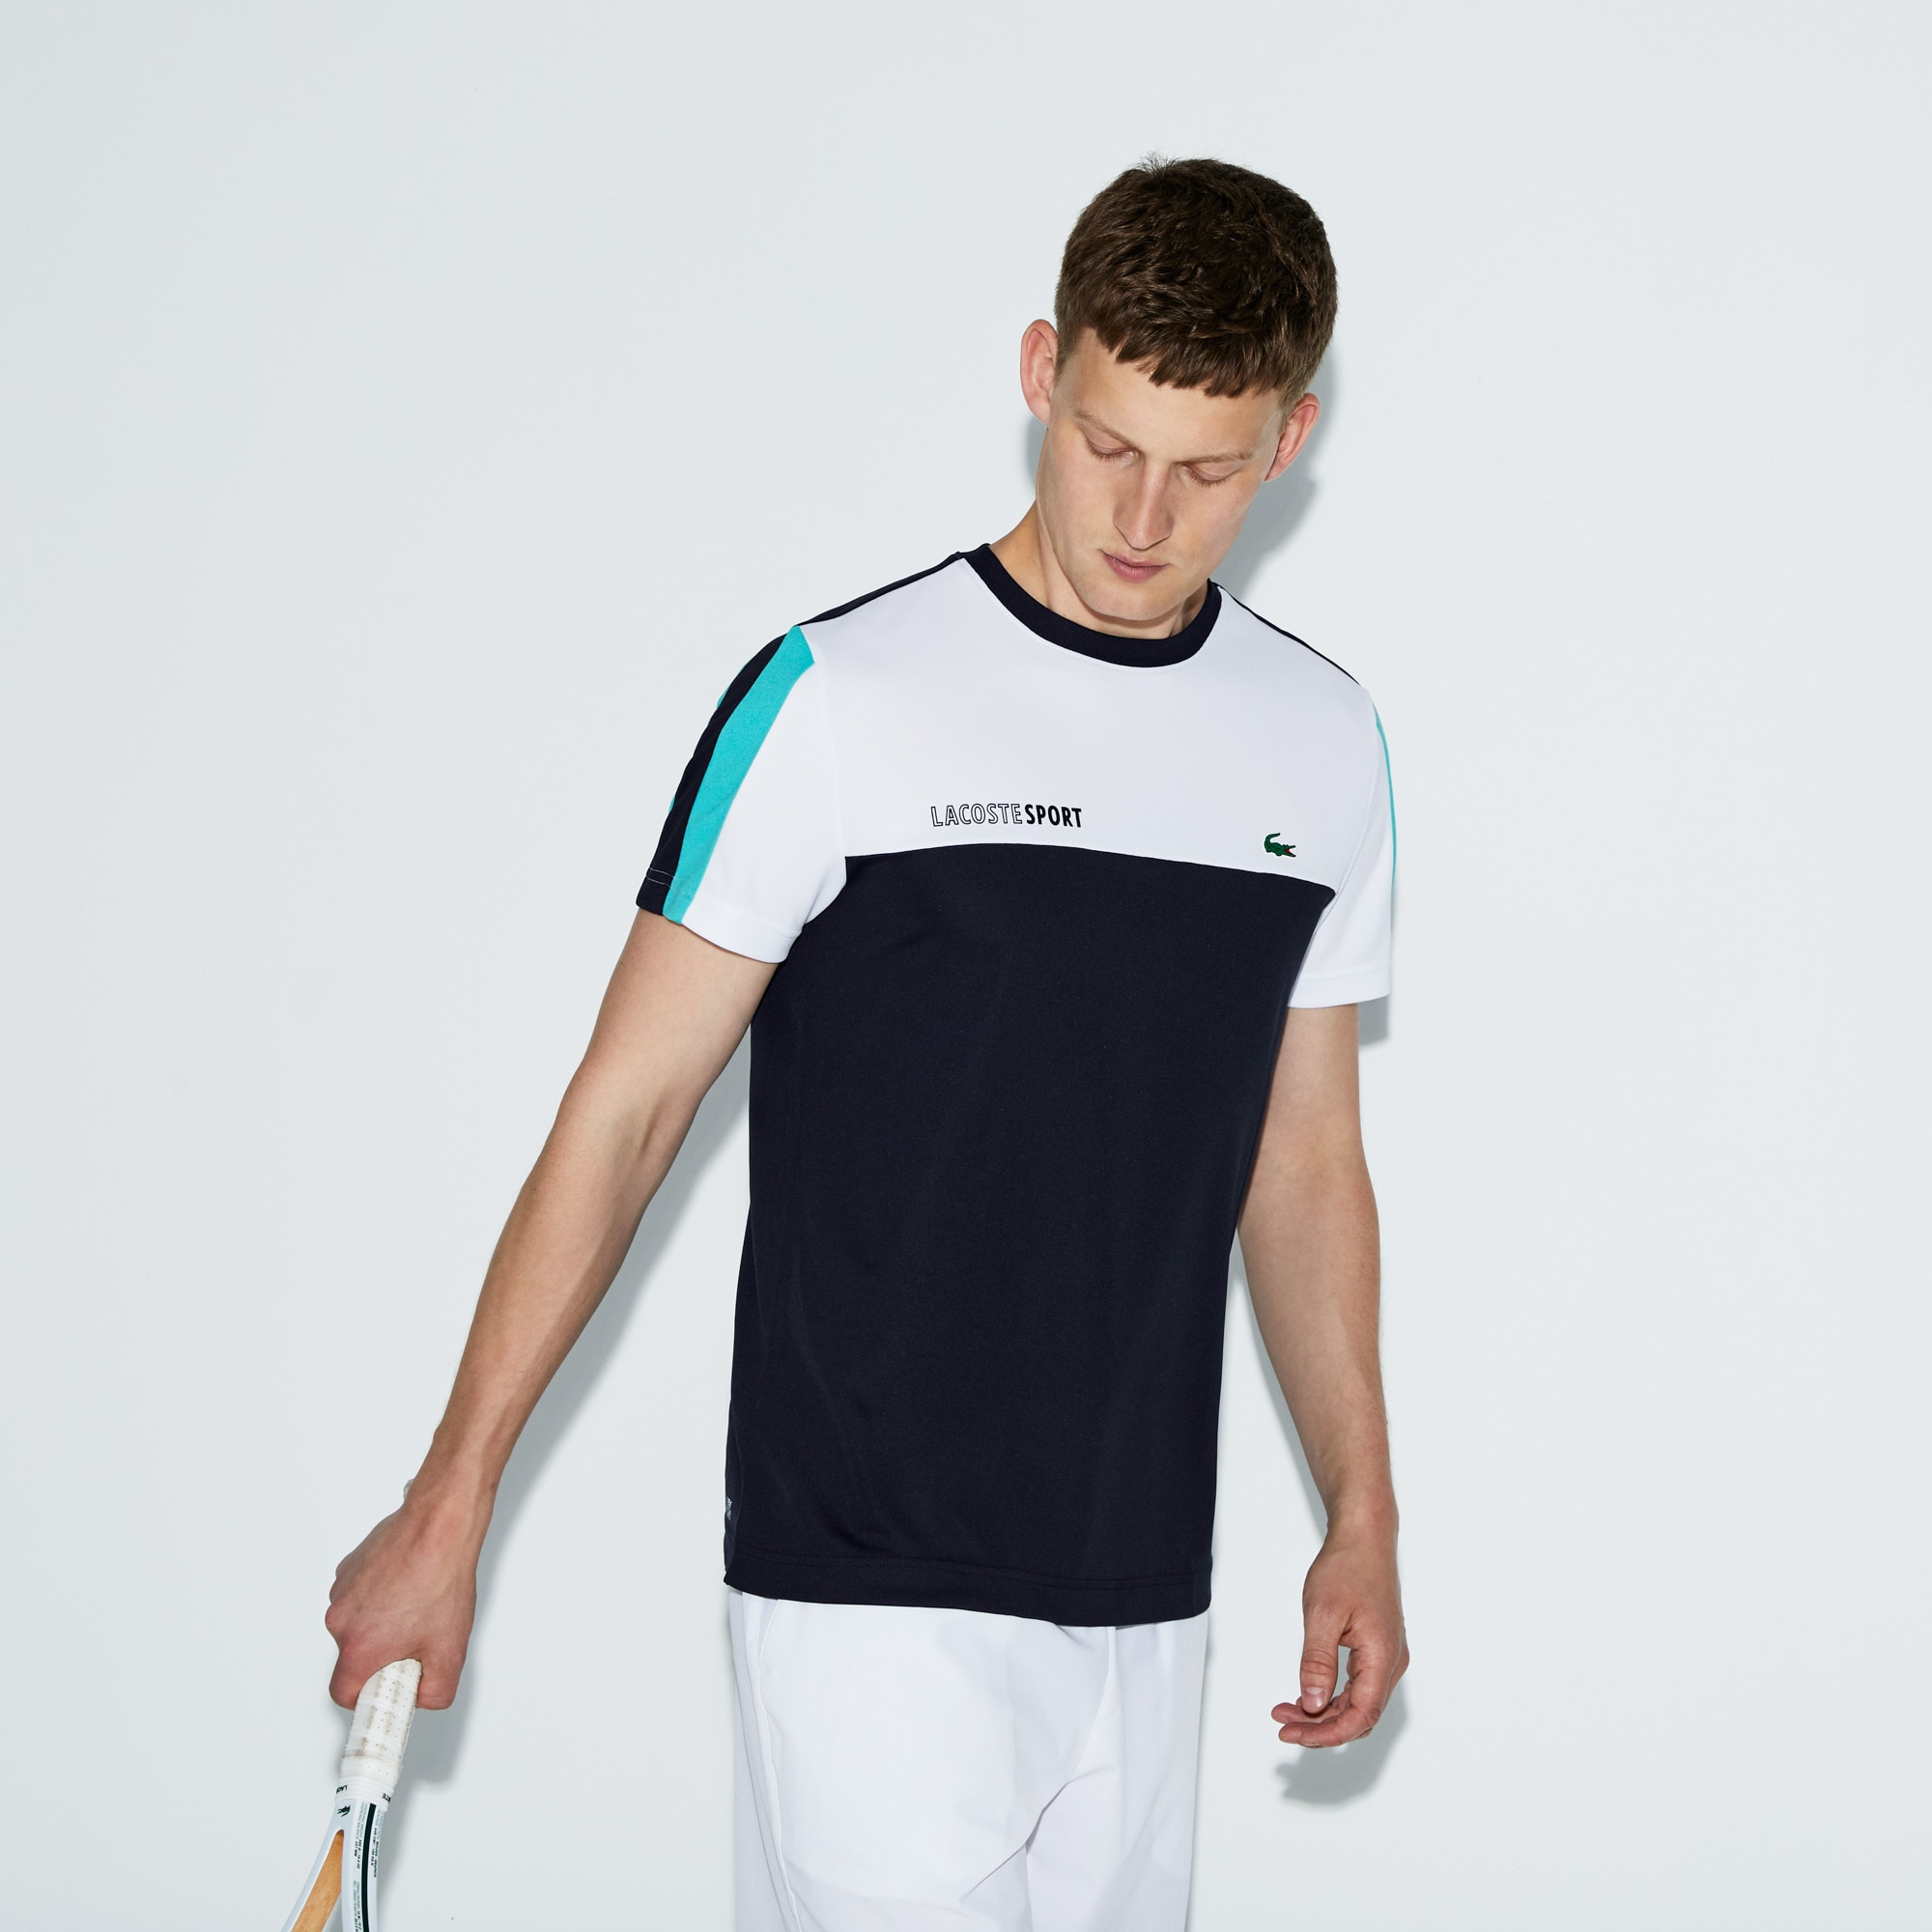 Men's Lacoste SPORT Crew Neck Colorblock Piqué Tennis T-shirt